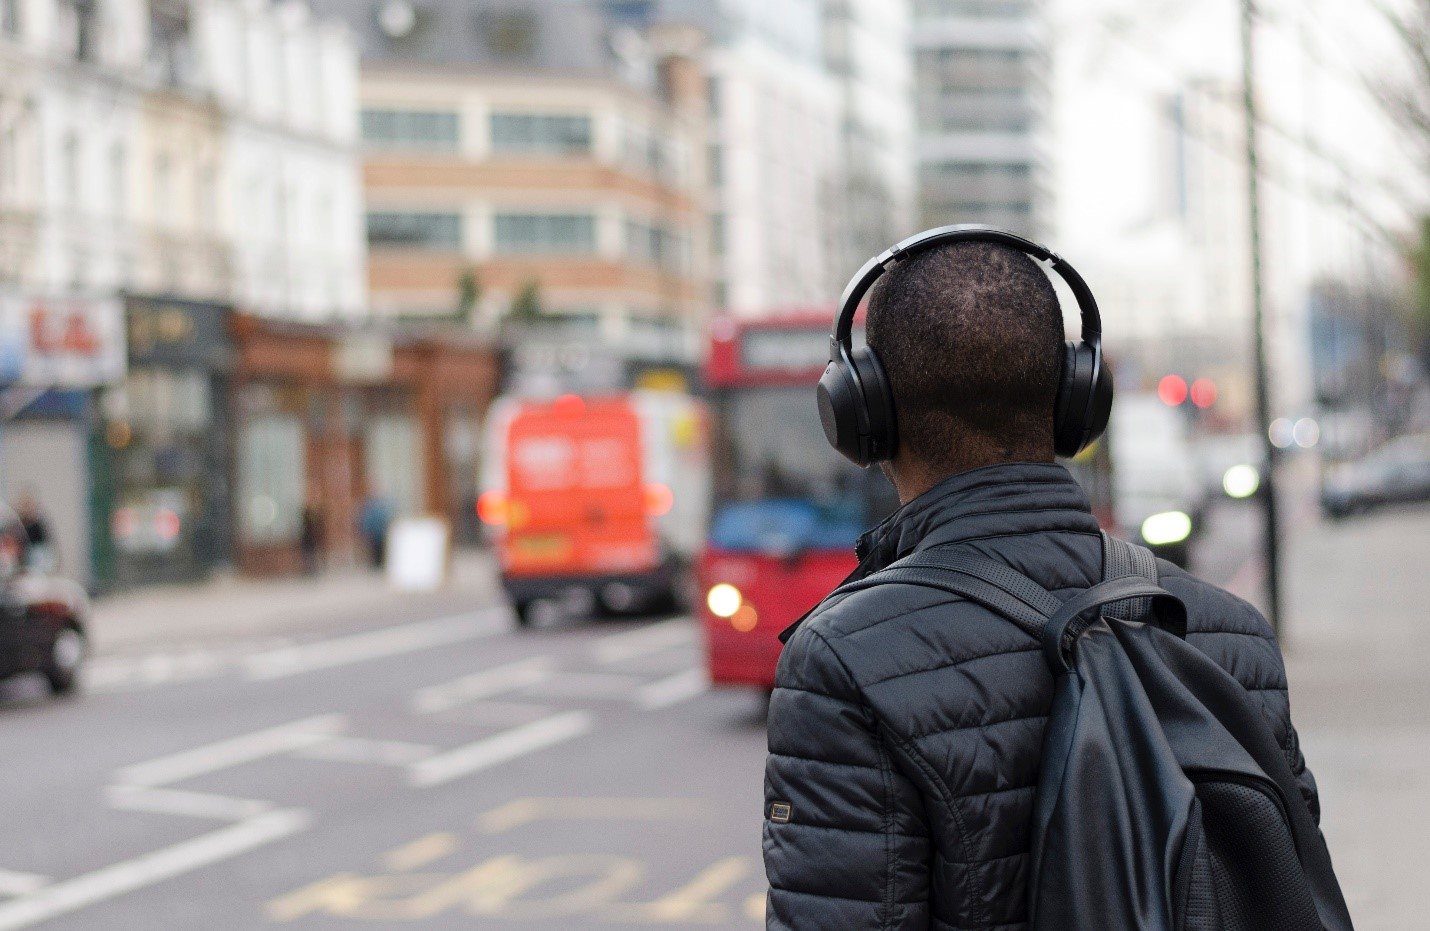 man standing on busy city street with headphones on